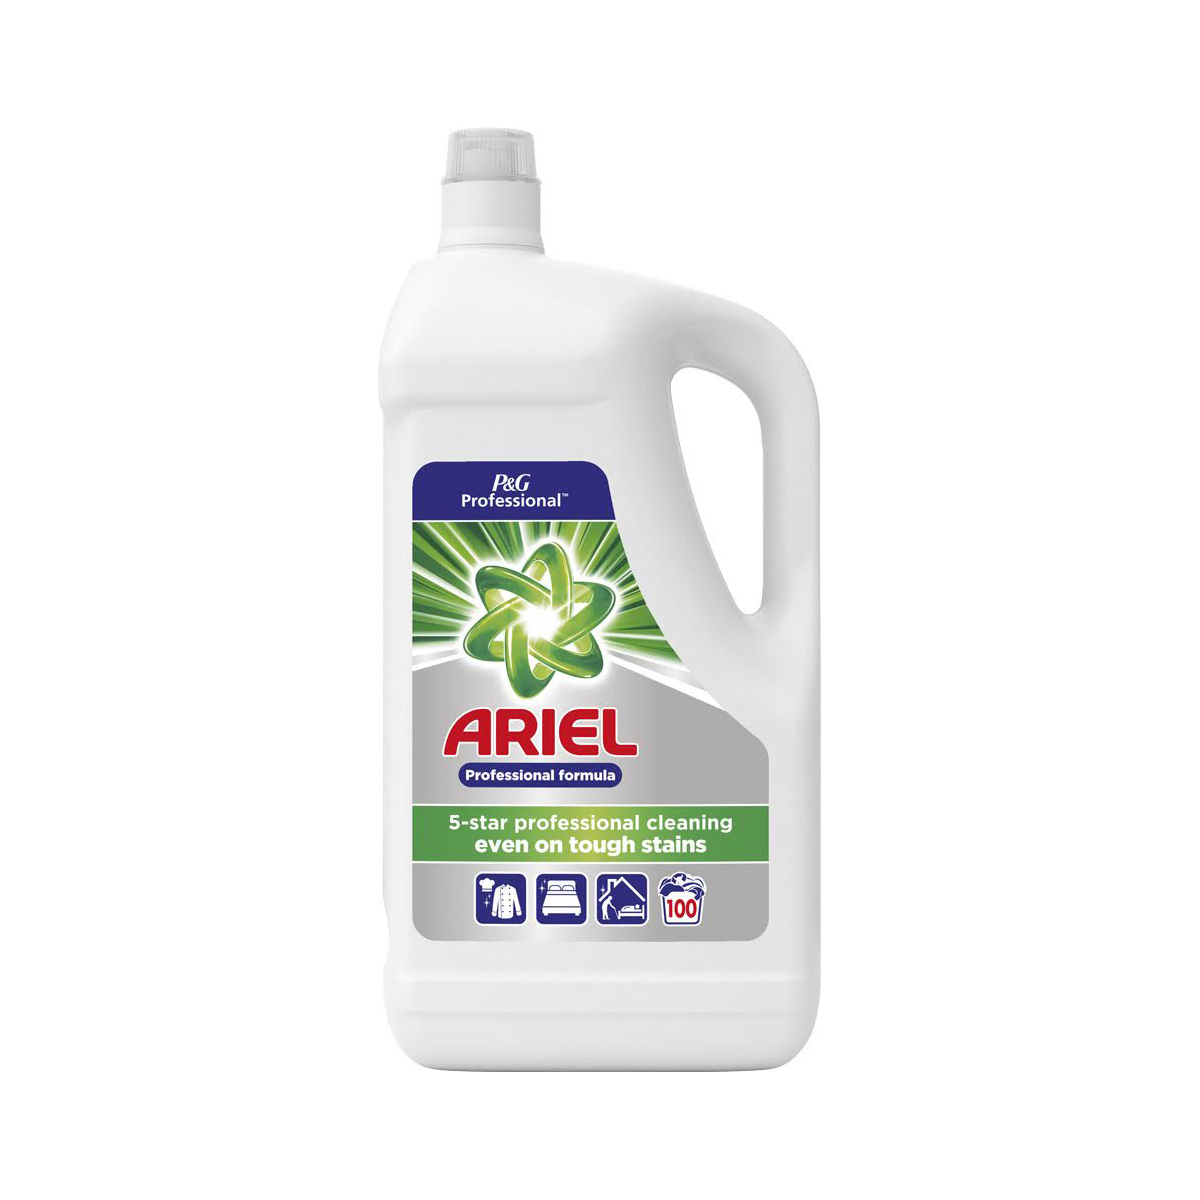 Image for Ariel Professional Liquid Wash 100 Washes 5 Litre Ref 73402